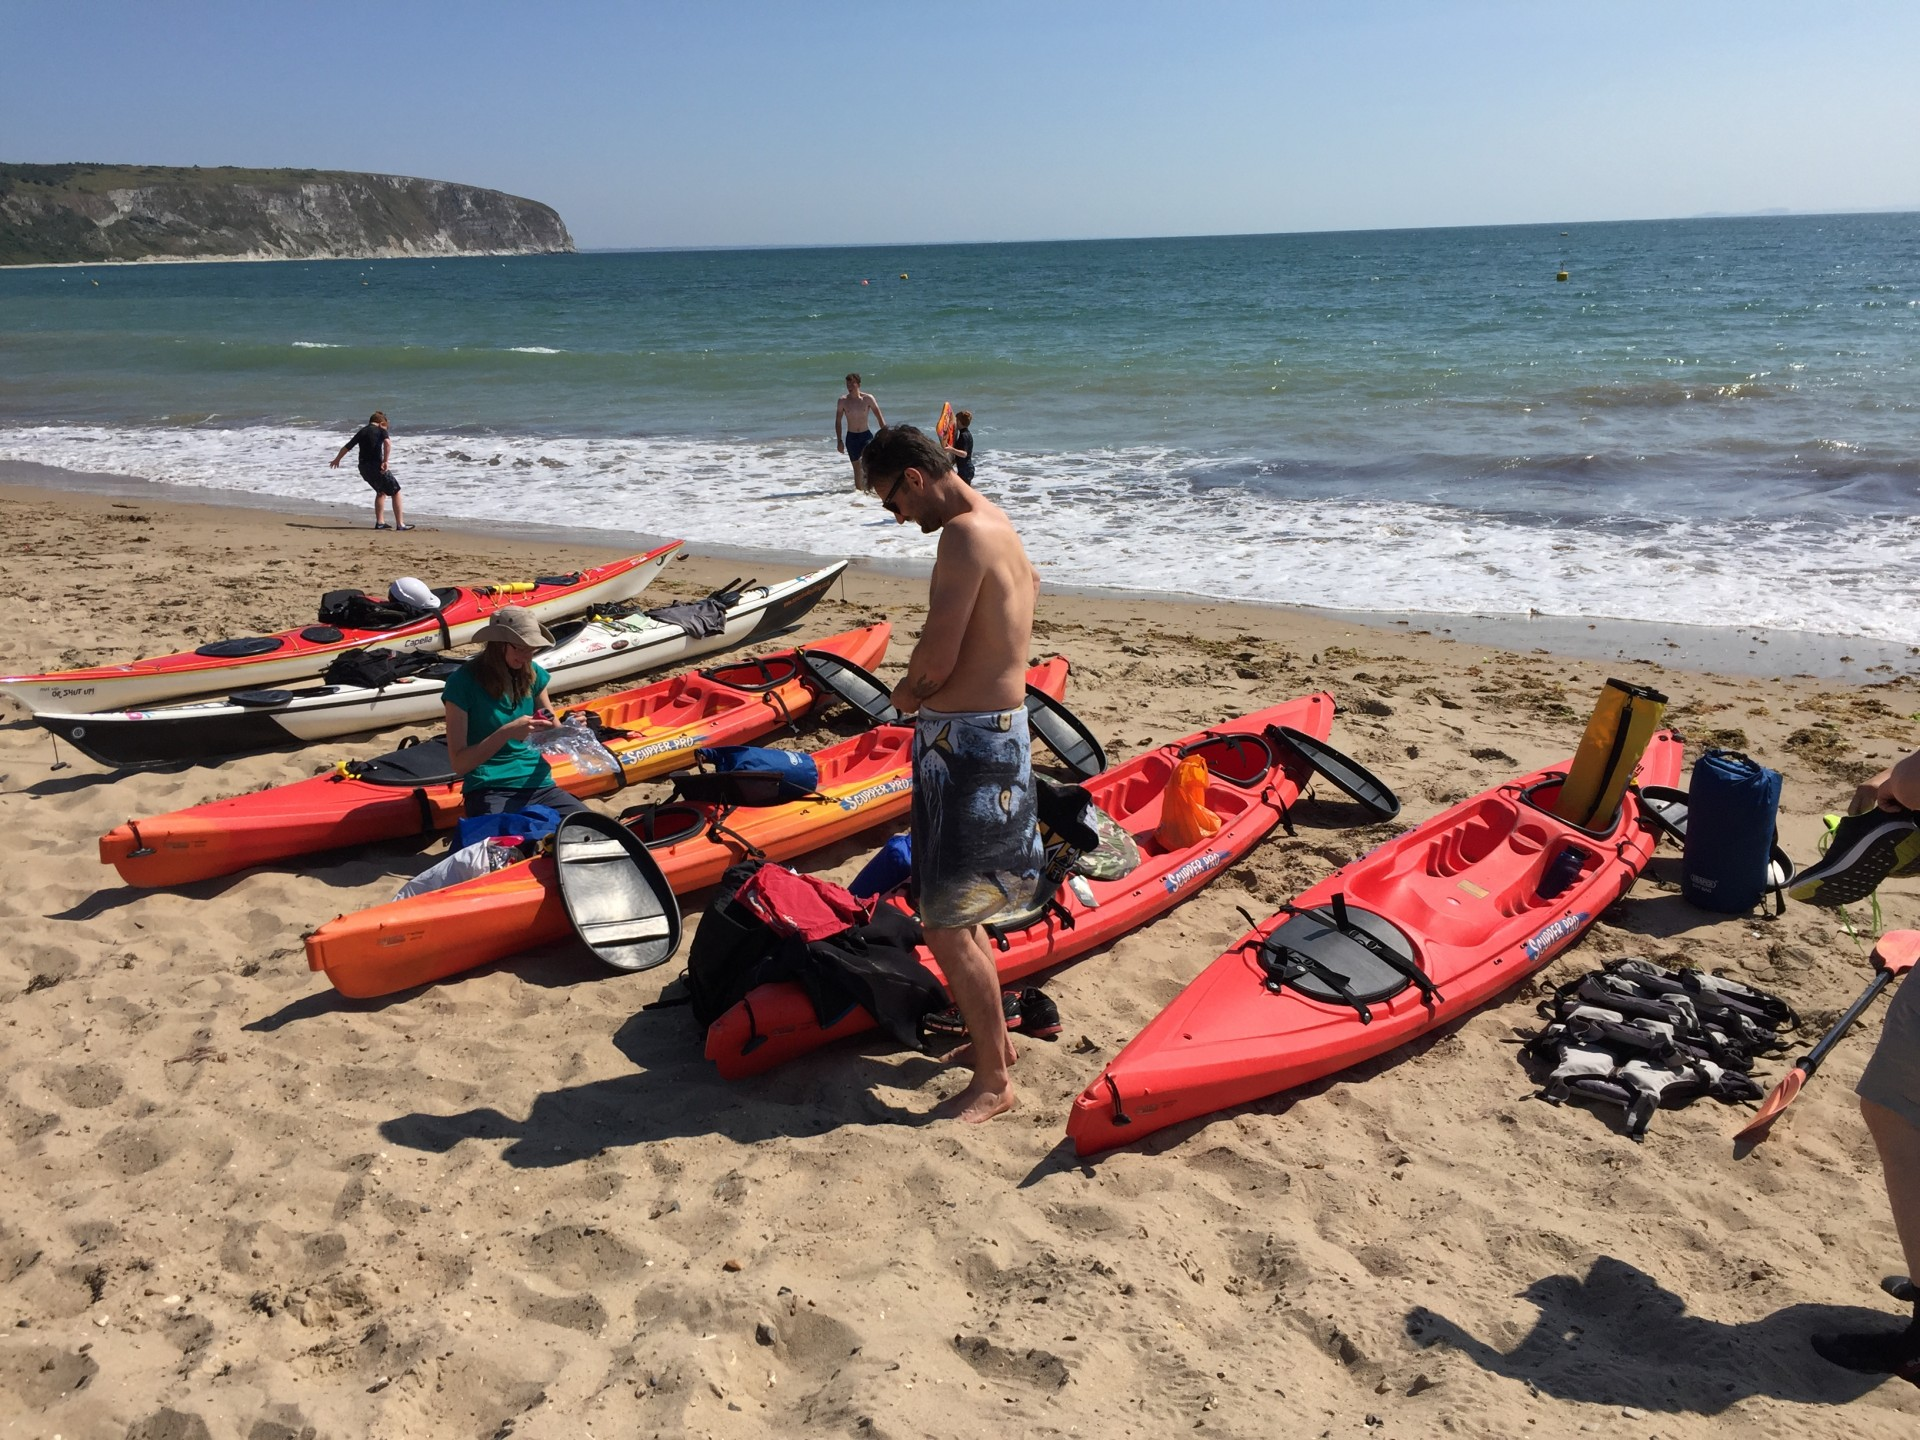 Kayaks line a sandy beach on the Dorset Jurassic coast